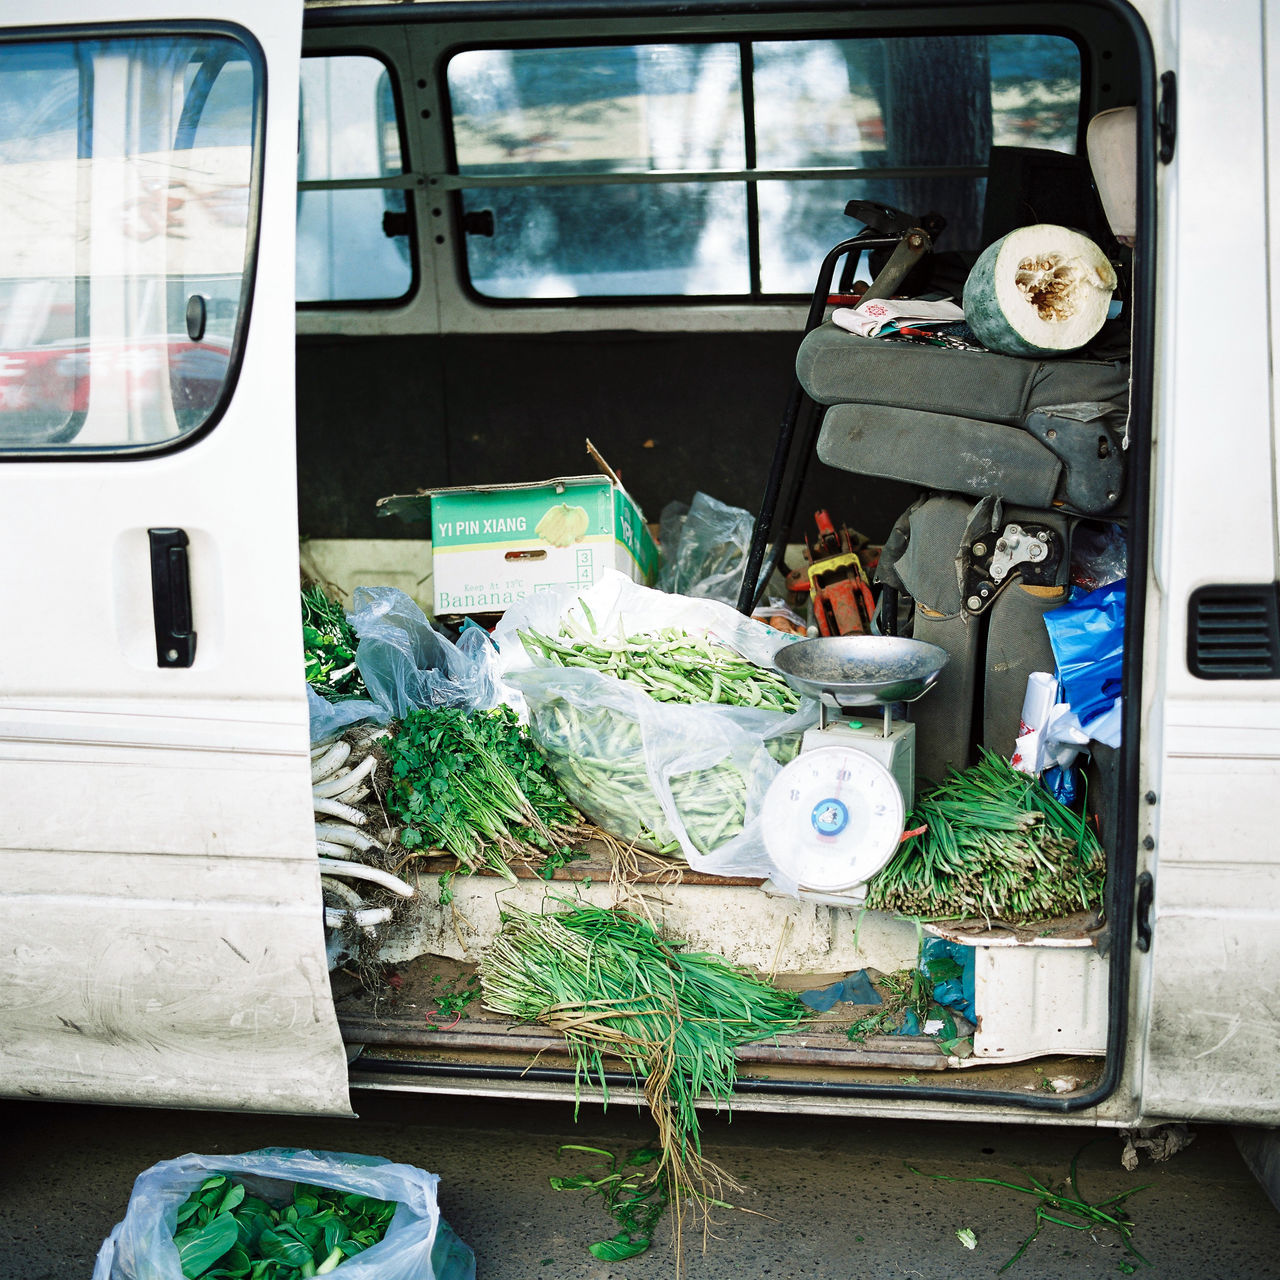 A vendor's van and his goods alongside a market stall in the Chinese capital of Beijing. Bananas Beijing Car China City Film Food Goods Land Vehicle Market Messy No People Outdoor Market Outdoors Peas Scale  Street Photography Transportation Travel Unhygienic Unsanitary Van Vegetables Vendor